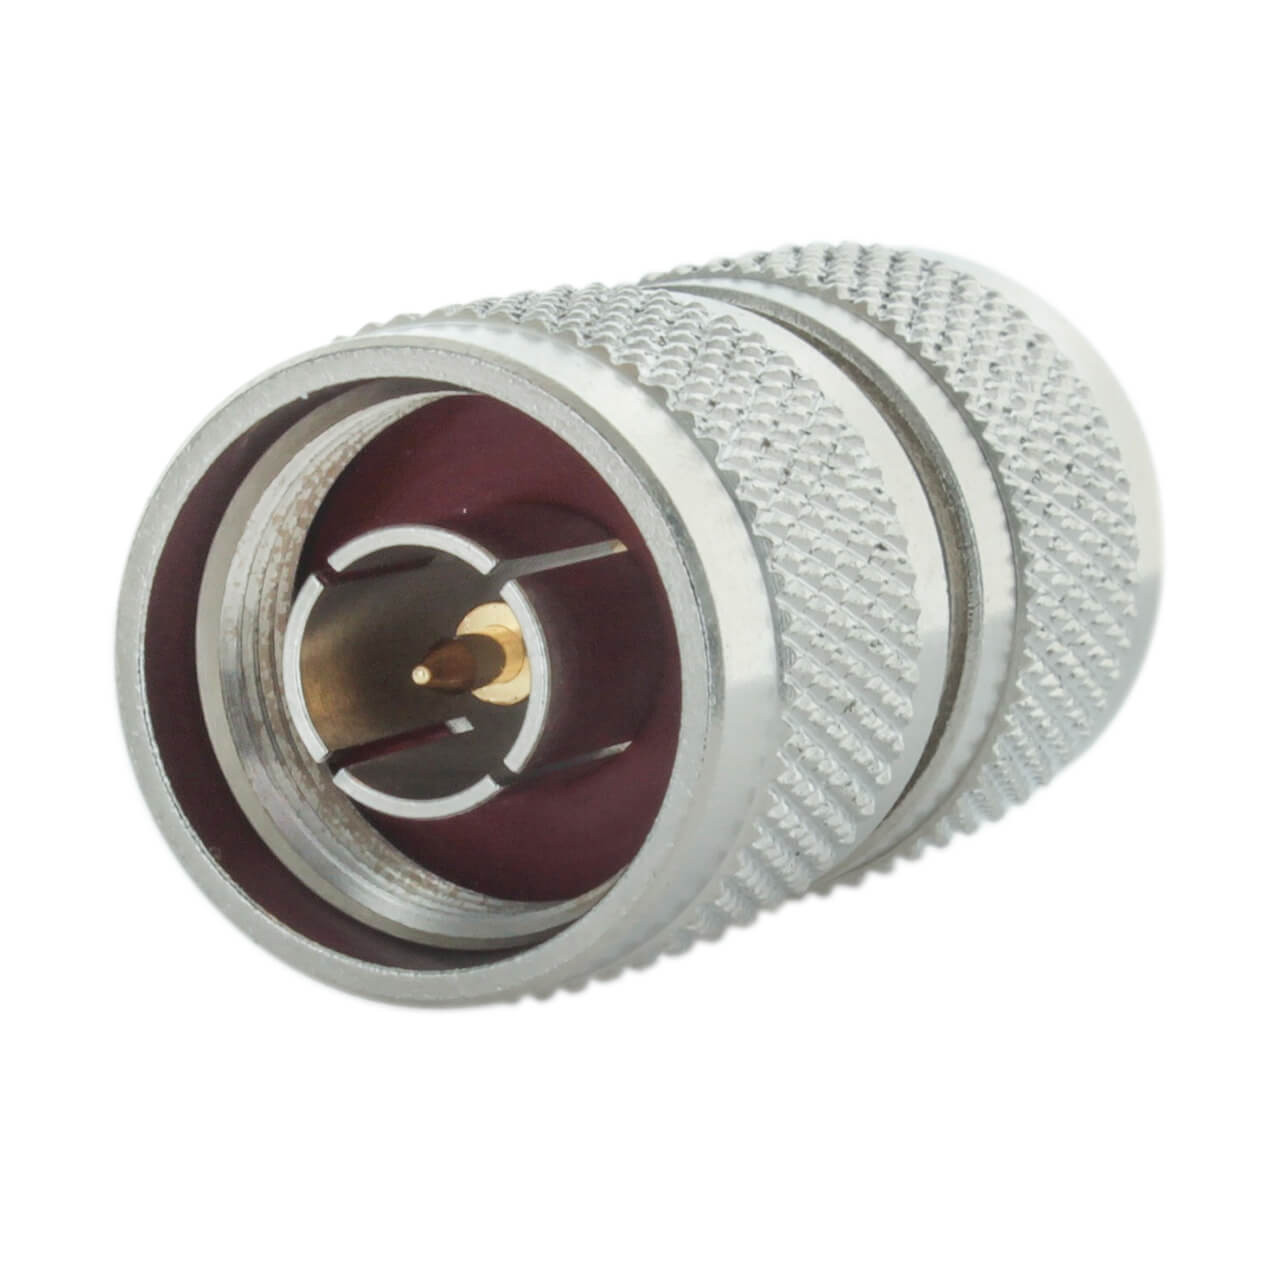 Bolton Barrel Connector - N-Male to N-Male